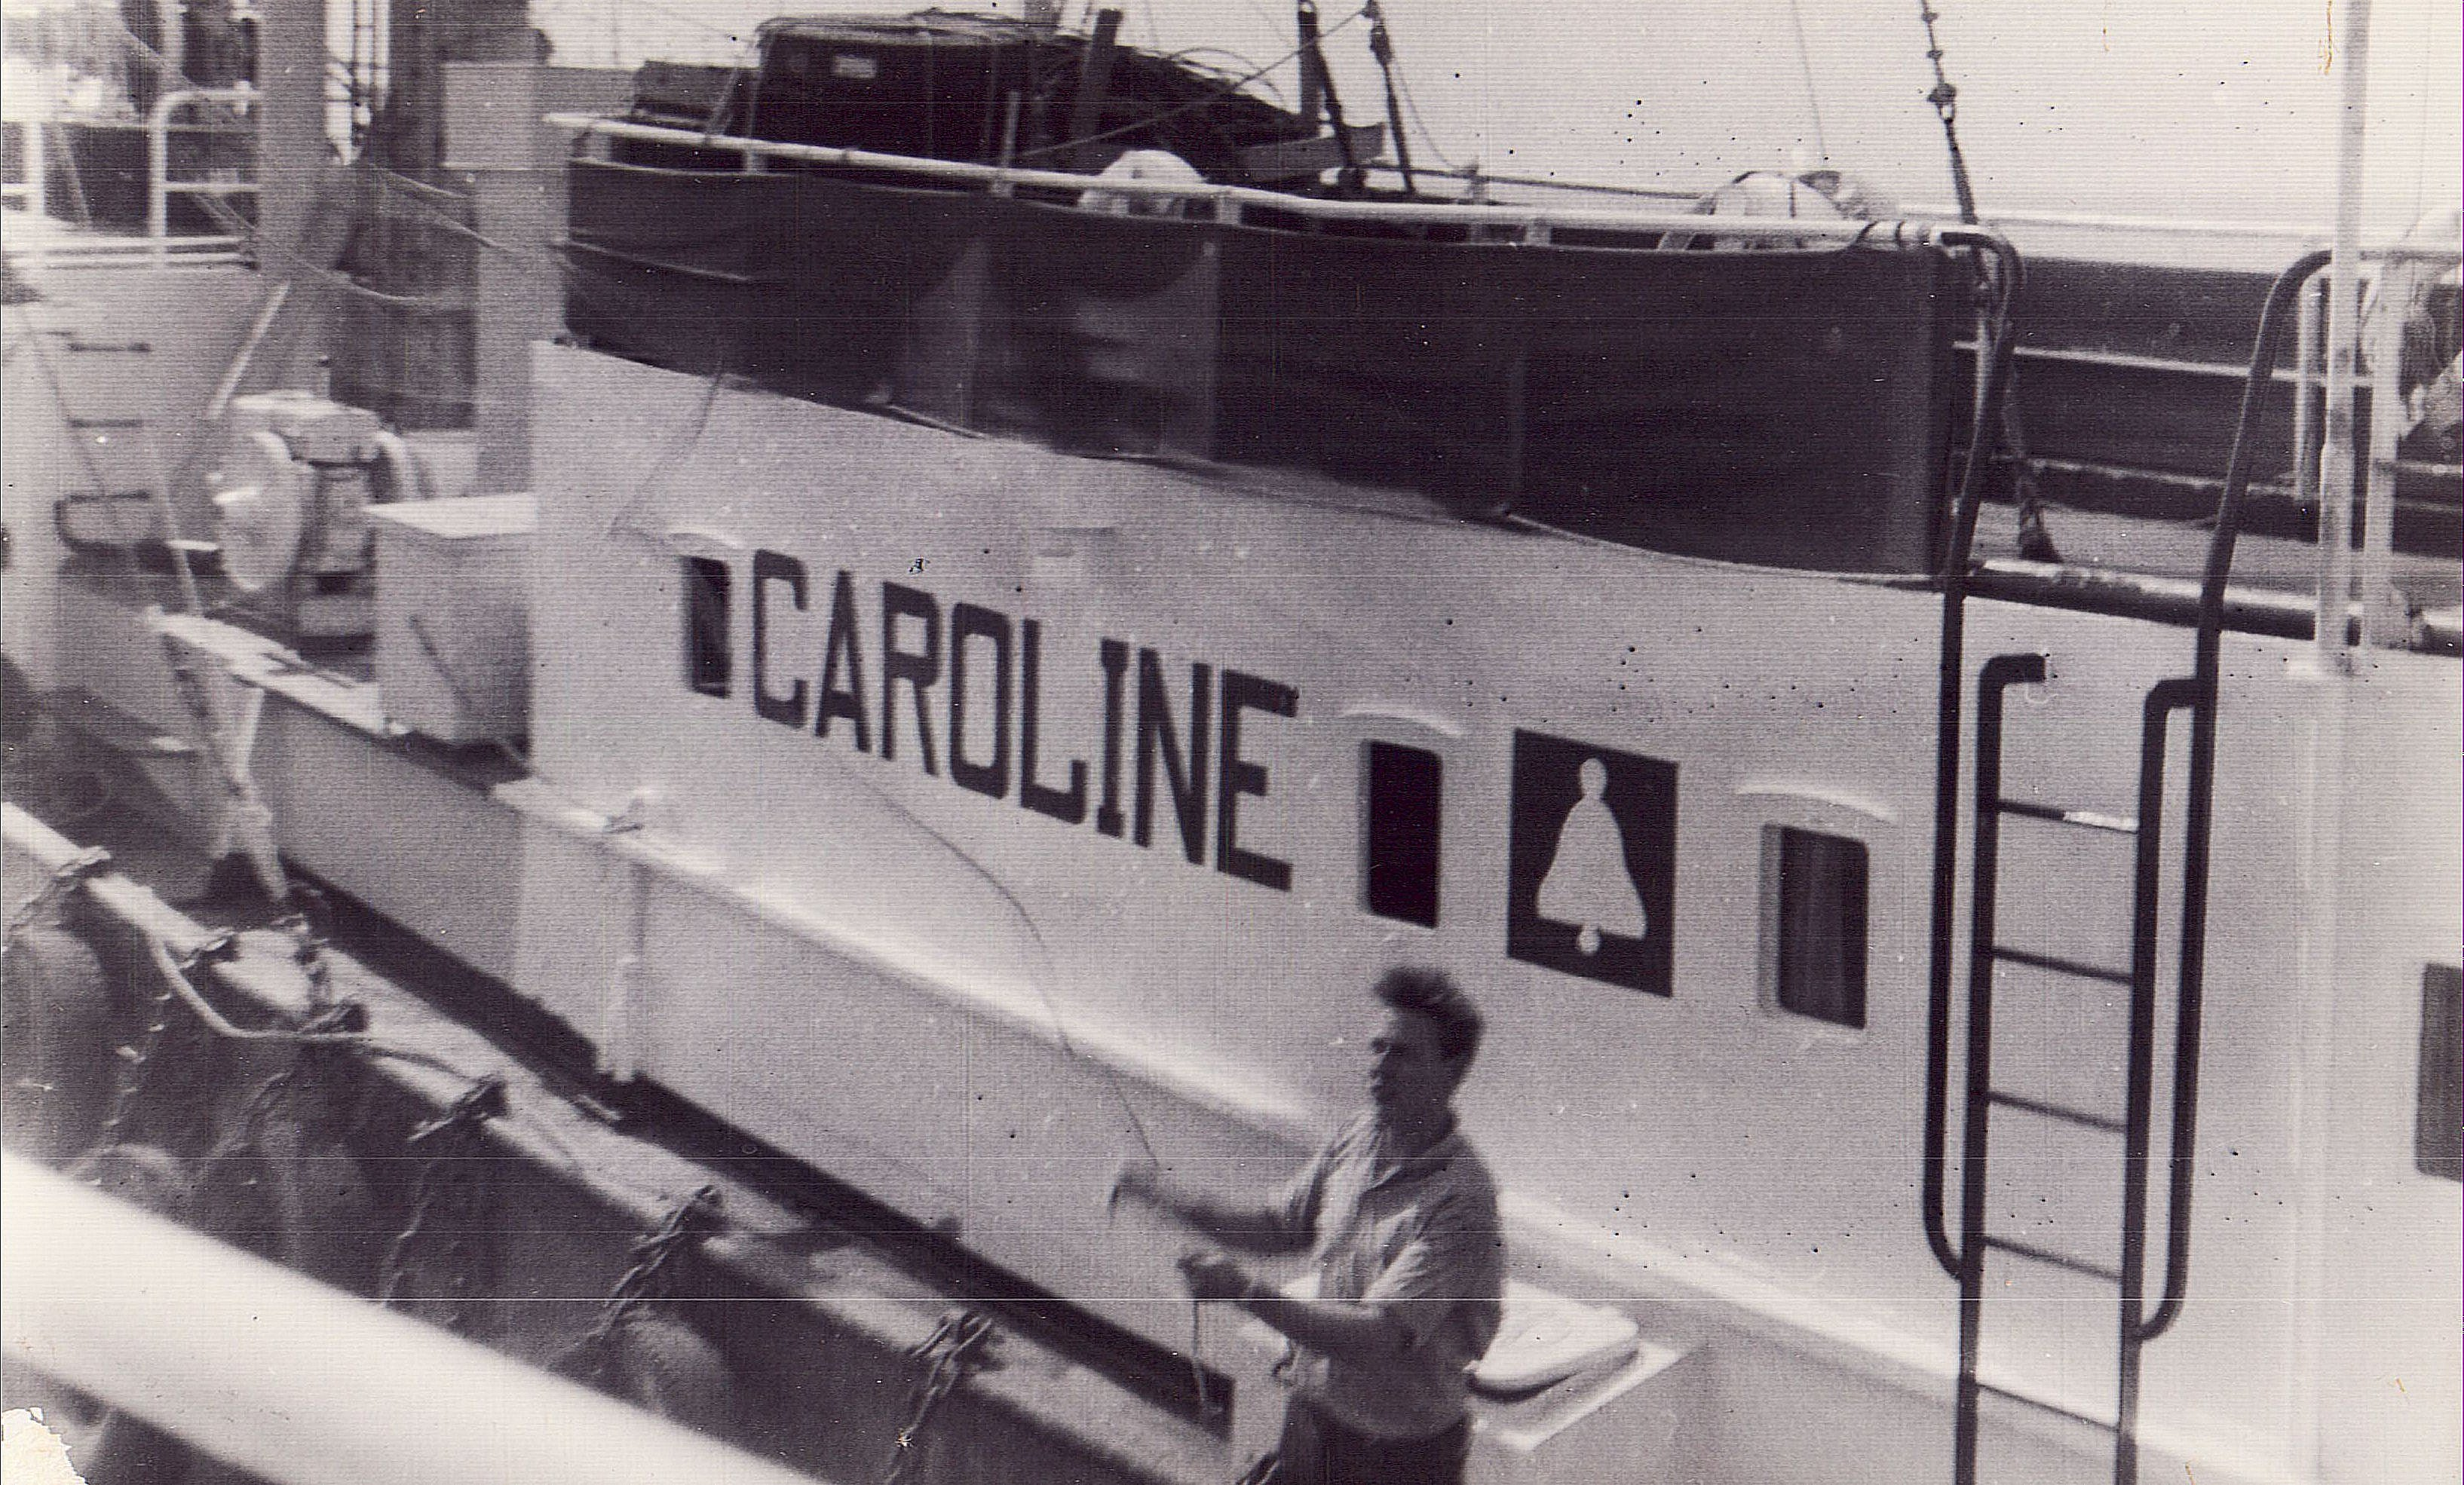 Roping alongside the Mi Amigo - Radio Caroline